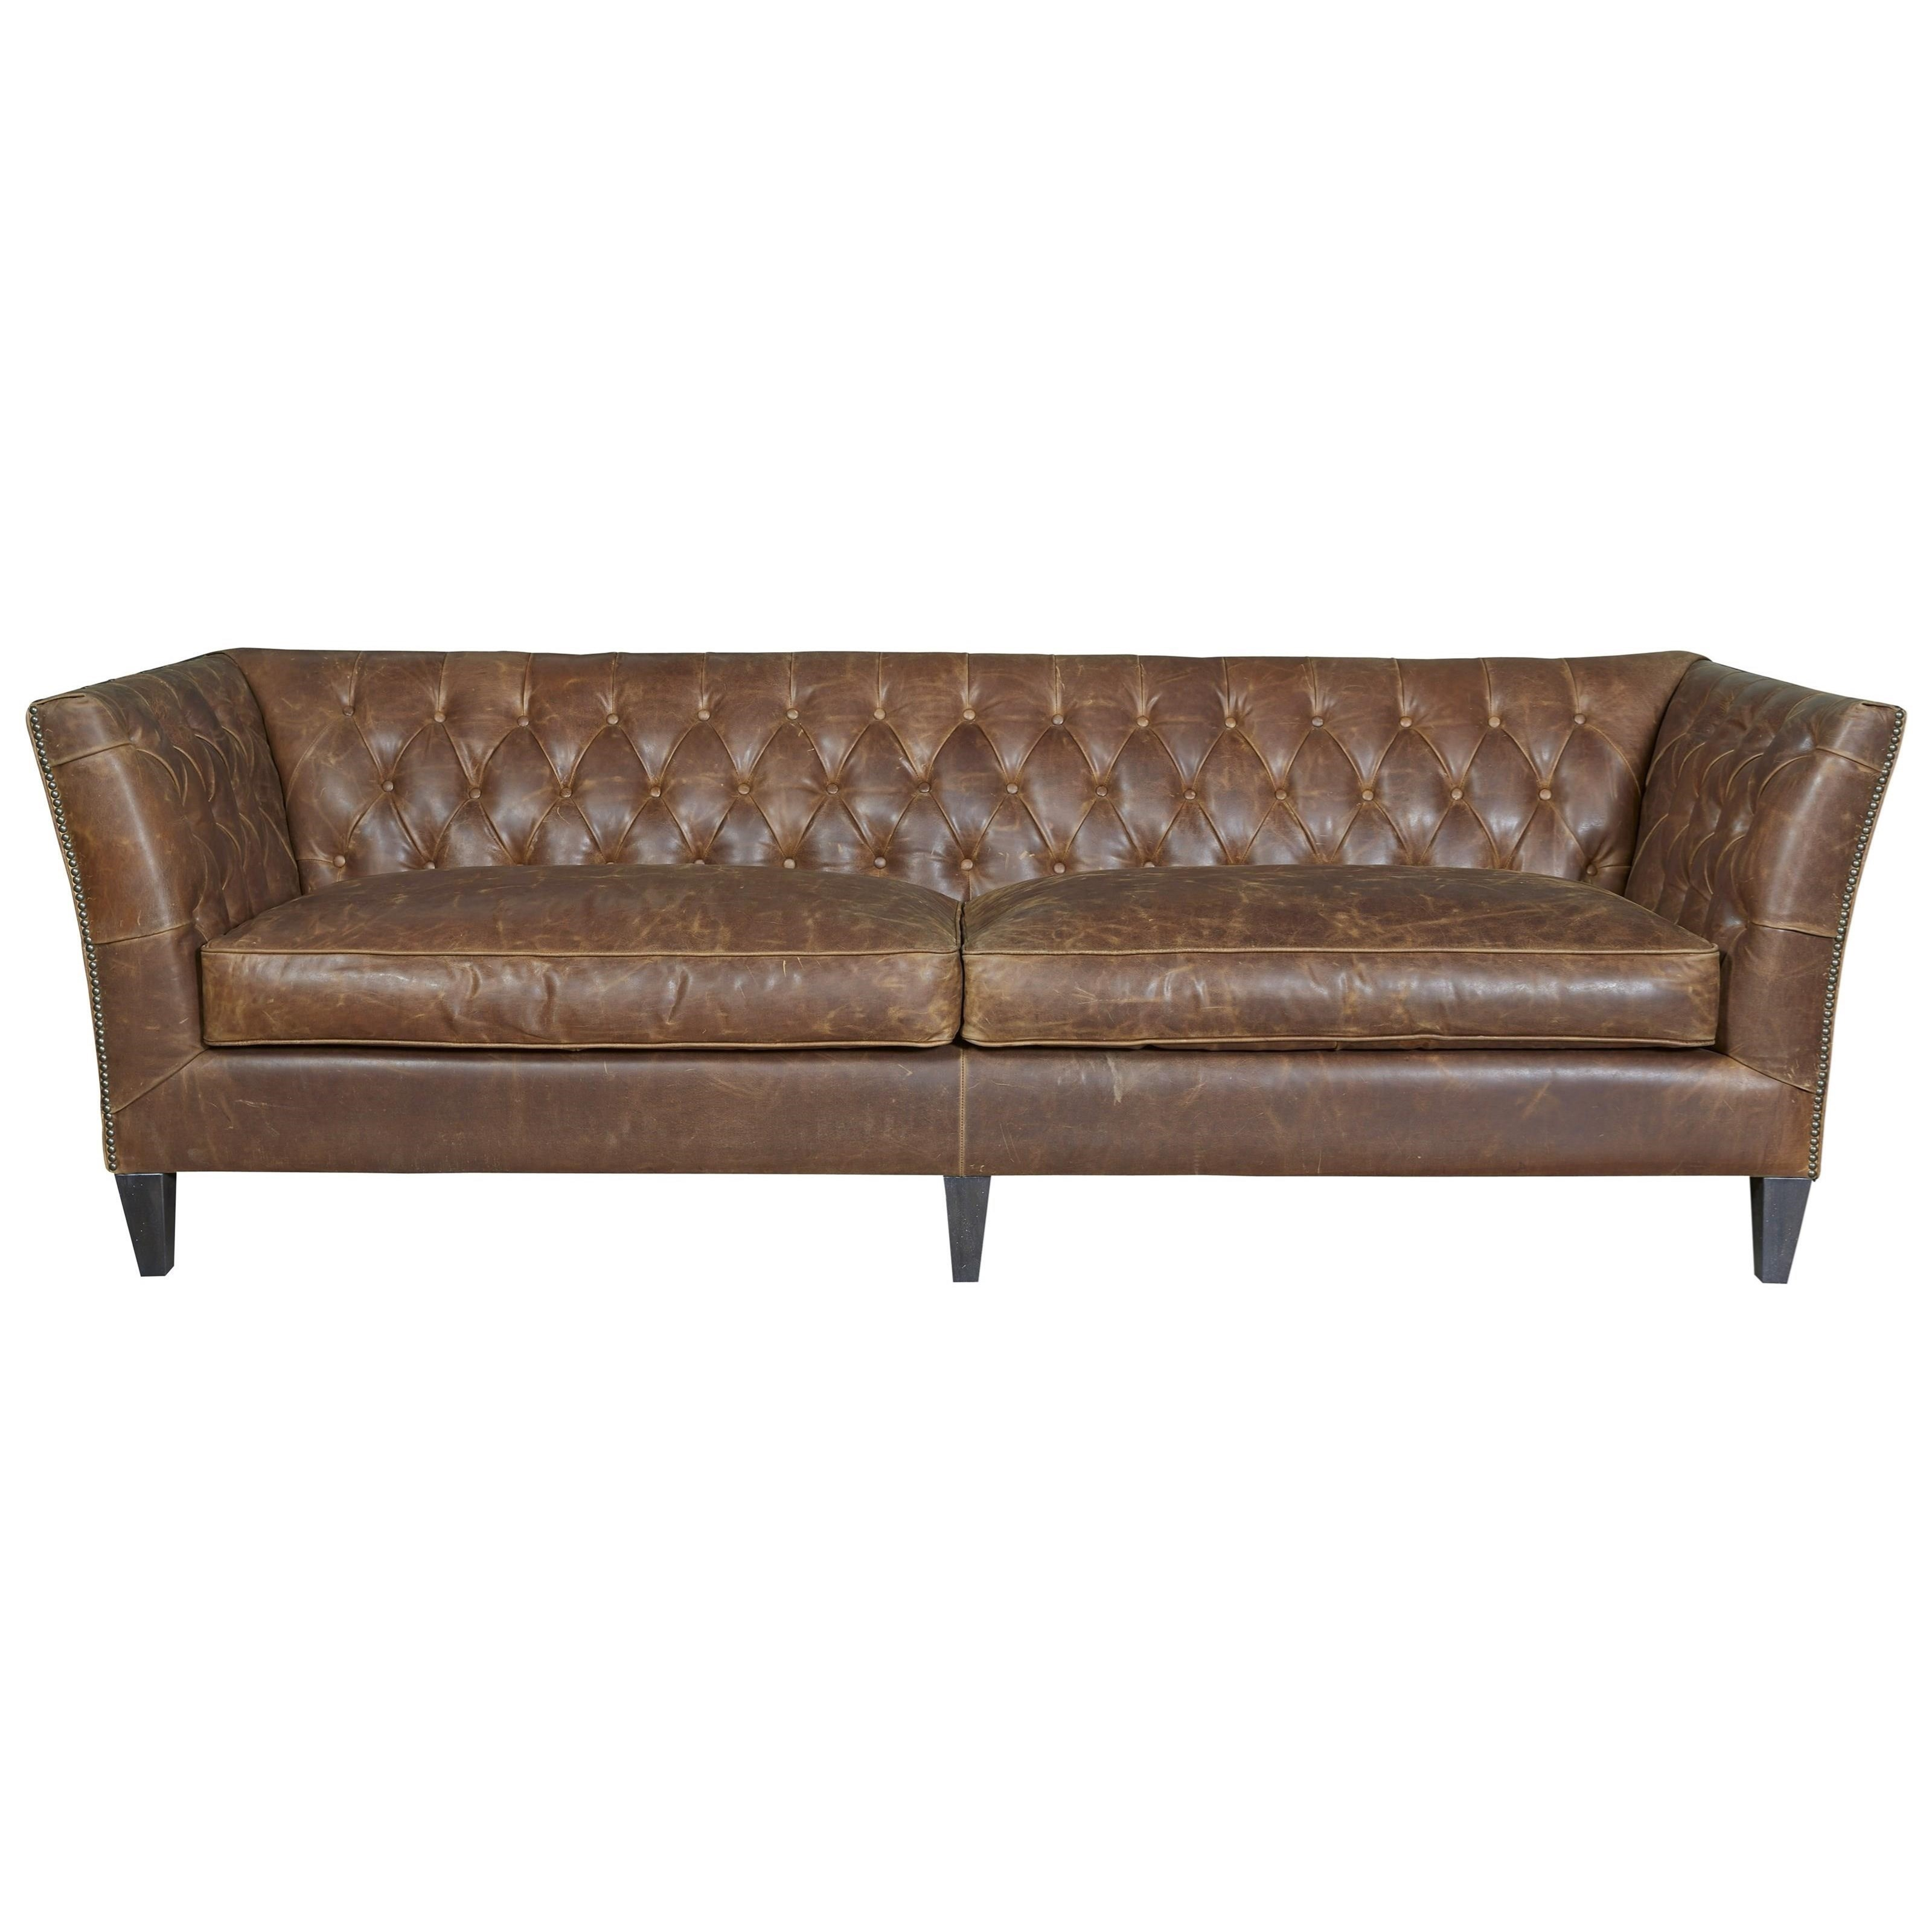 tufted leather sofa cheap sectional canada wittman co duncan traditional in diamond by